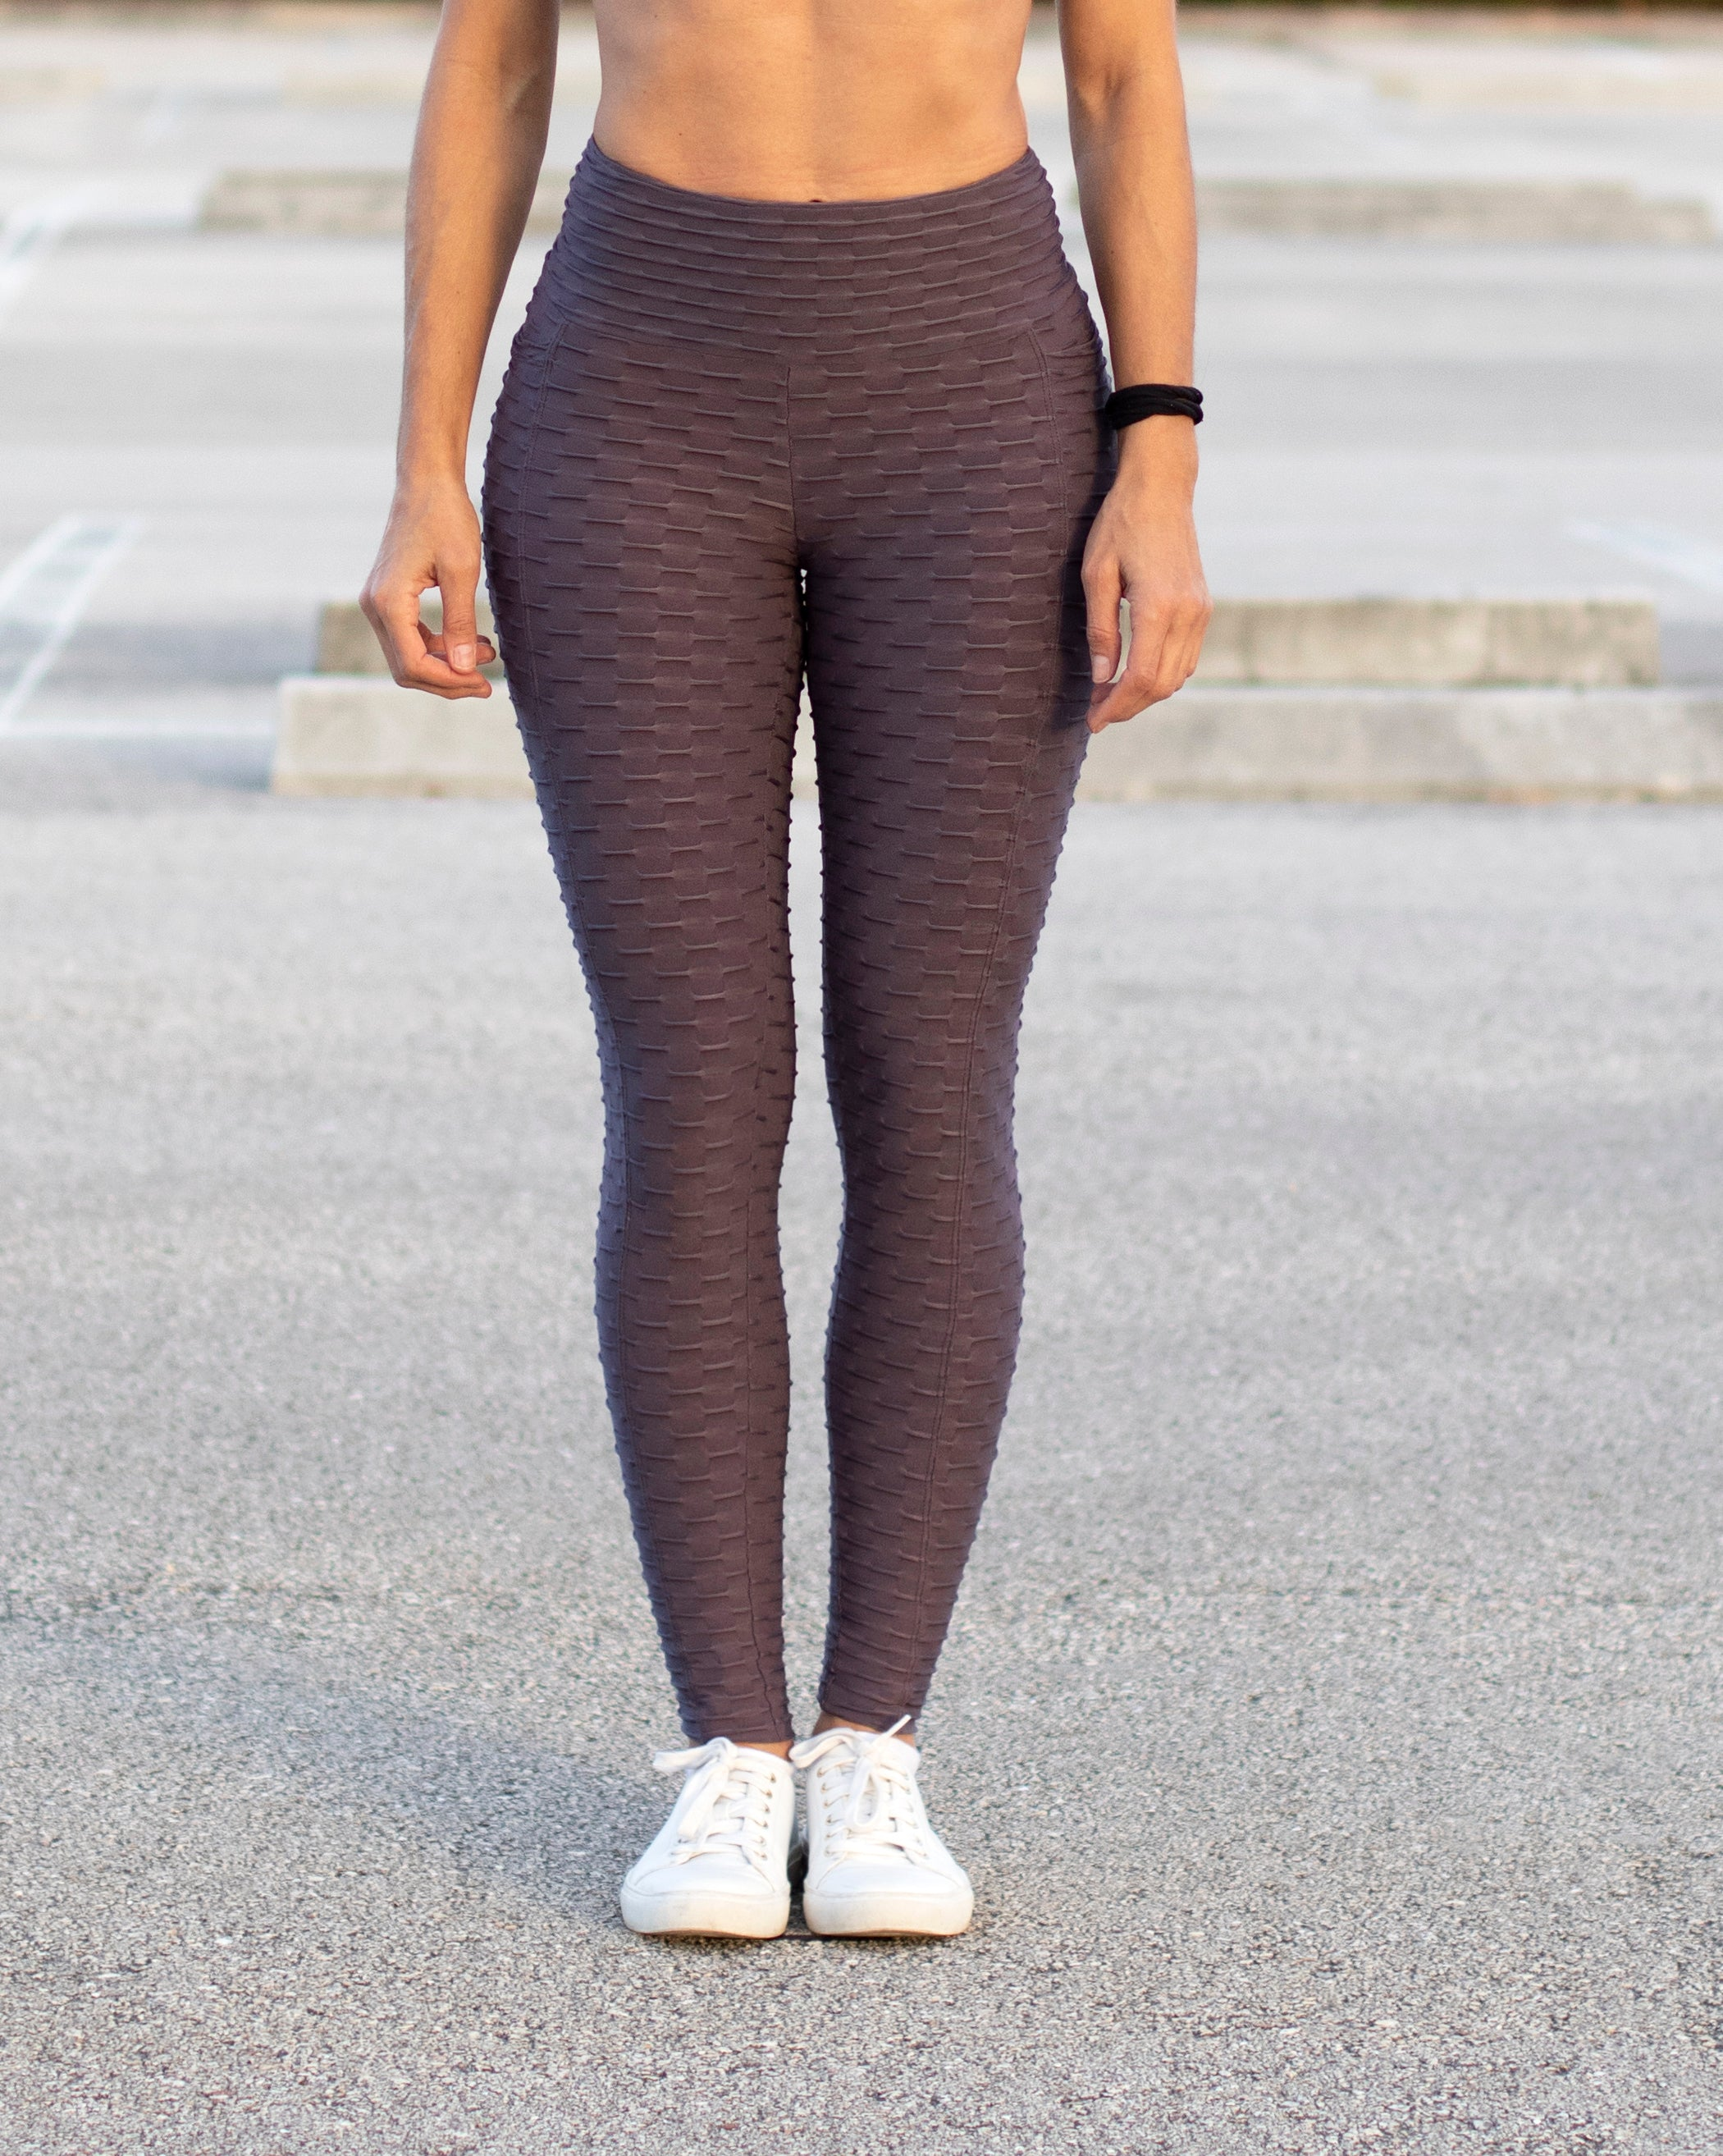 Honeycomb Leggings with Pocket